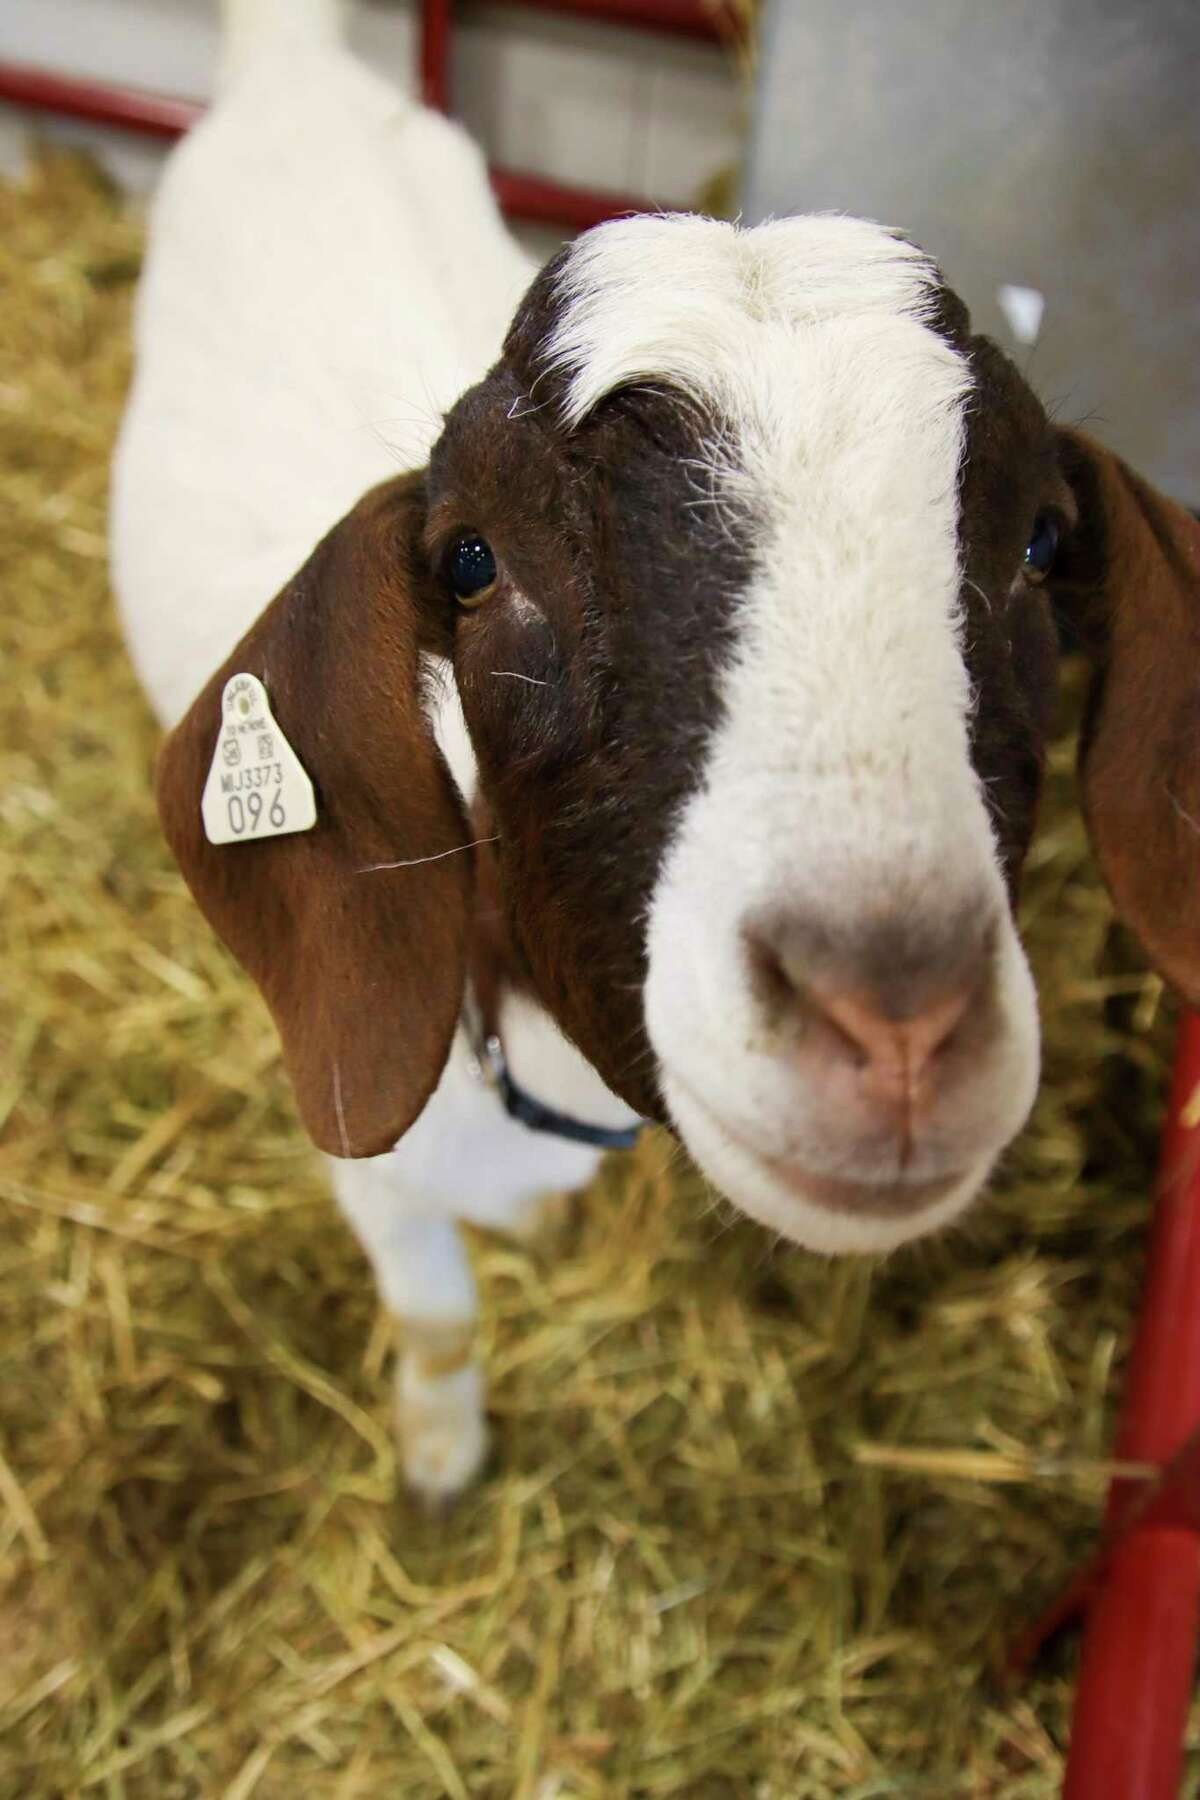 The momma goat takes interest in the camera as well. (Scott Nunn/Huron Daily Tribune)